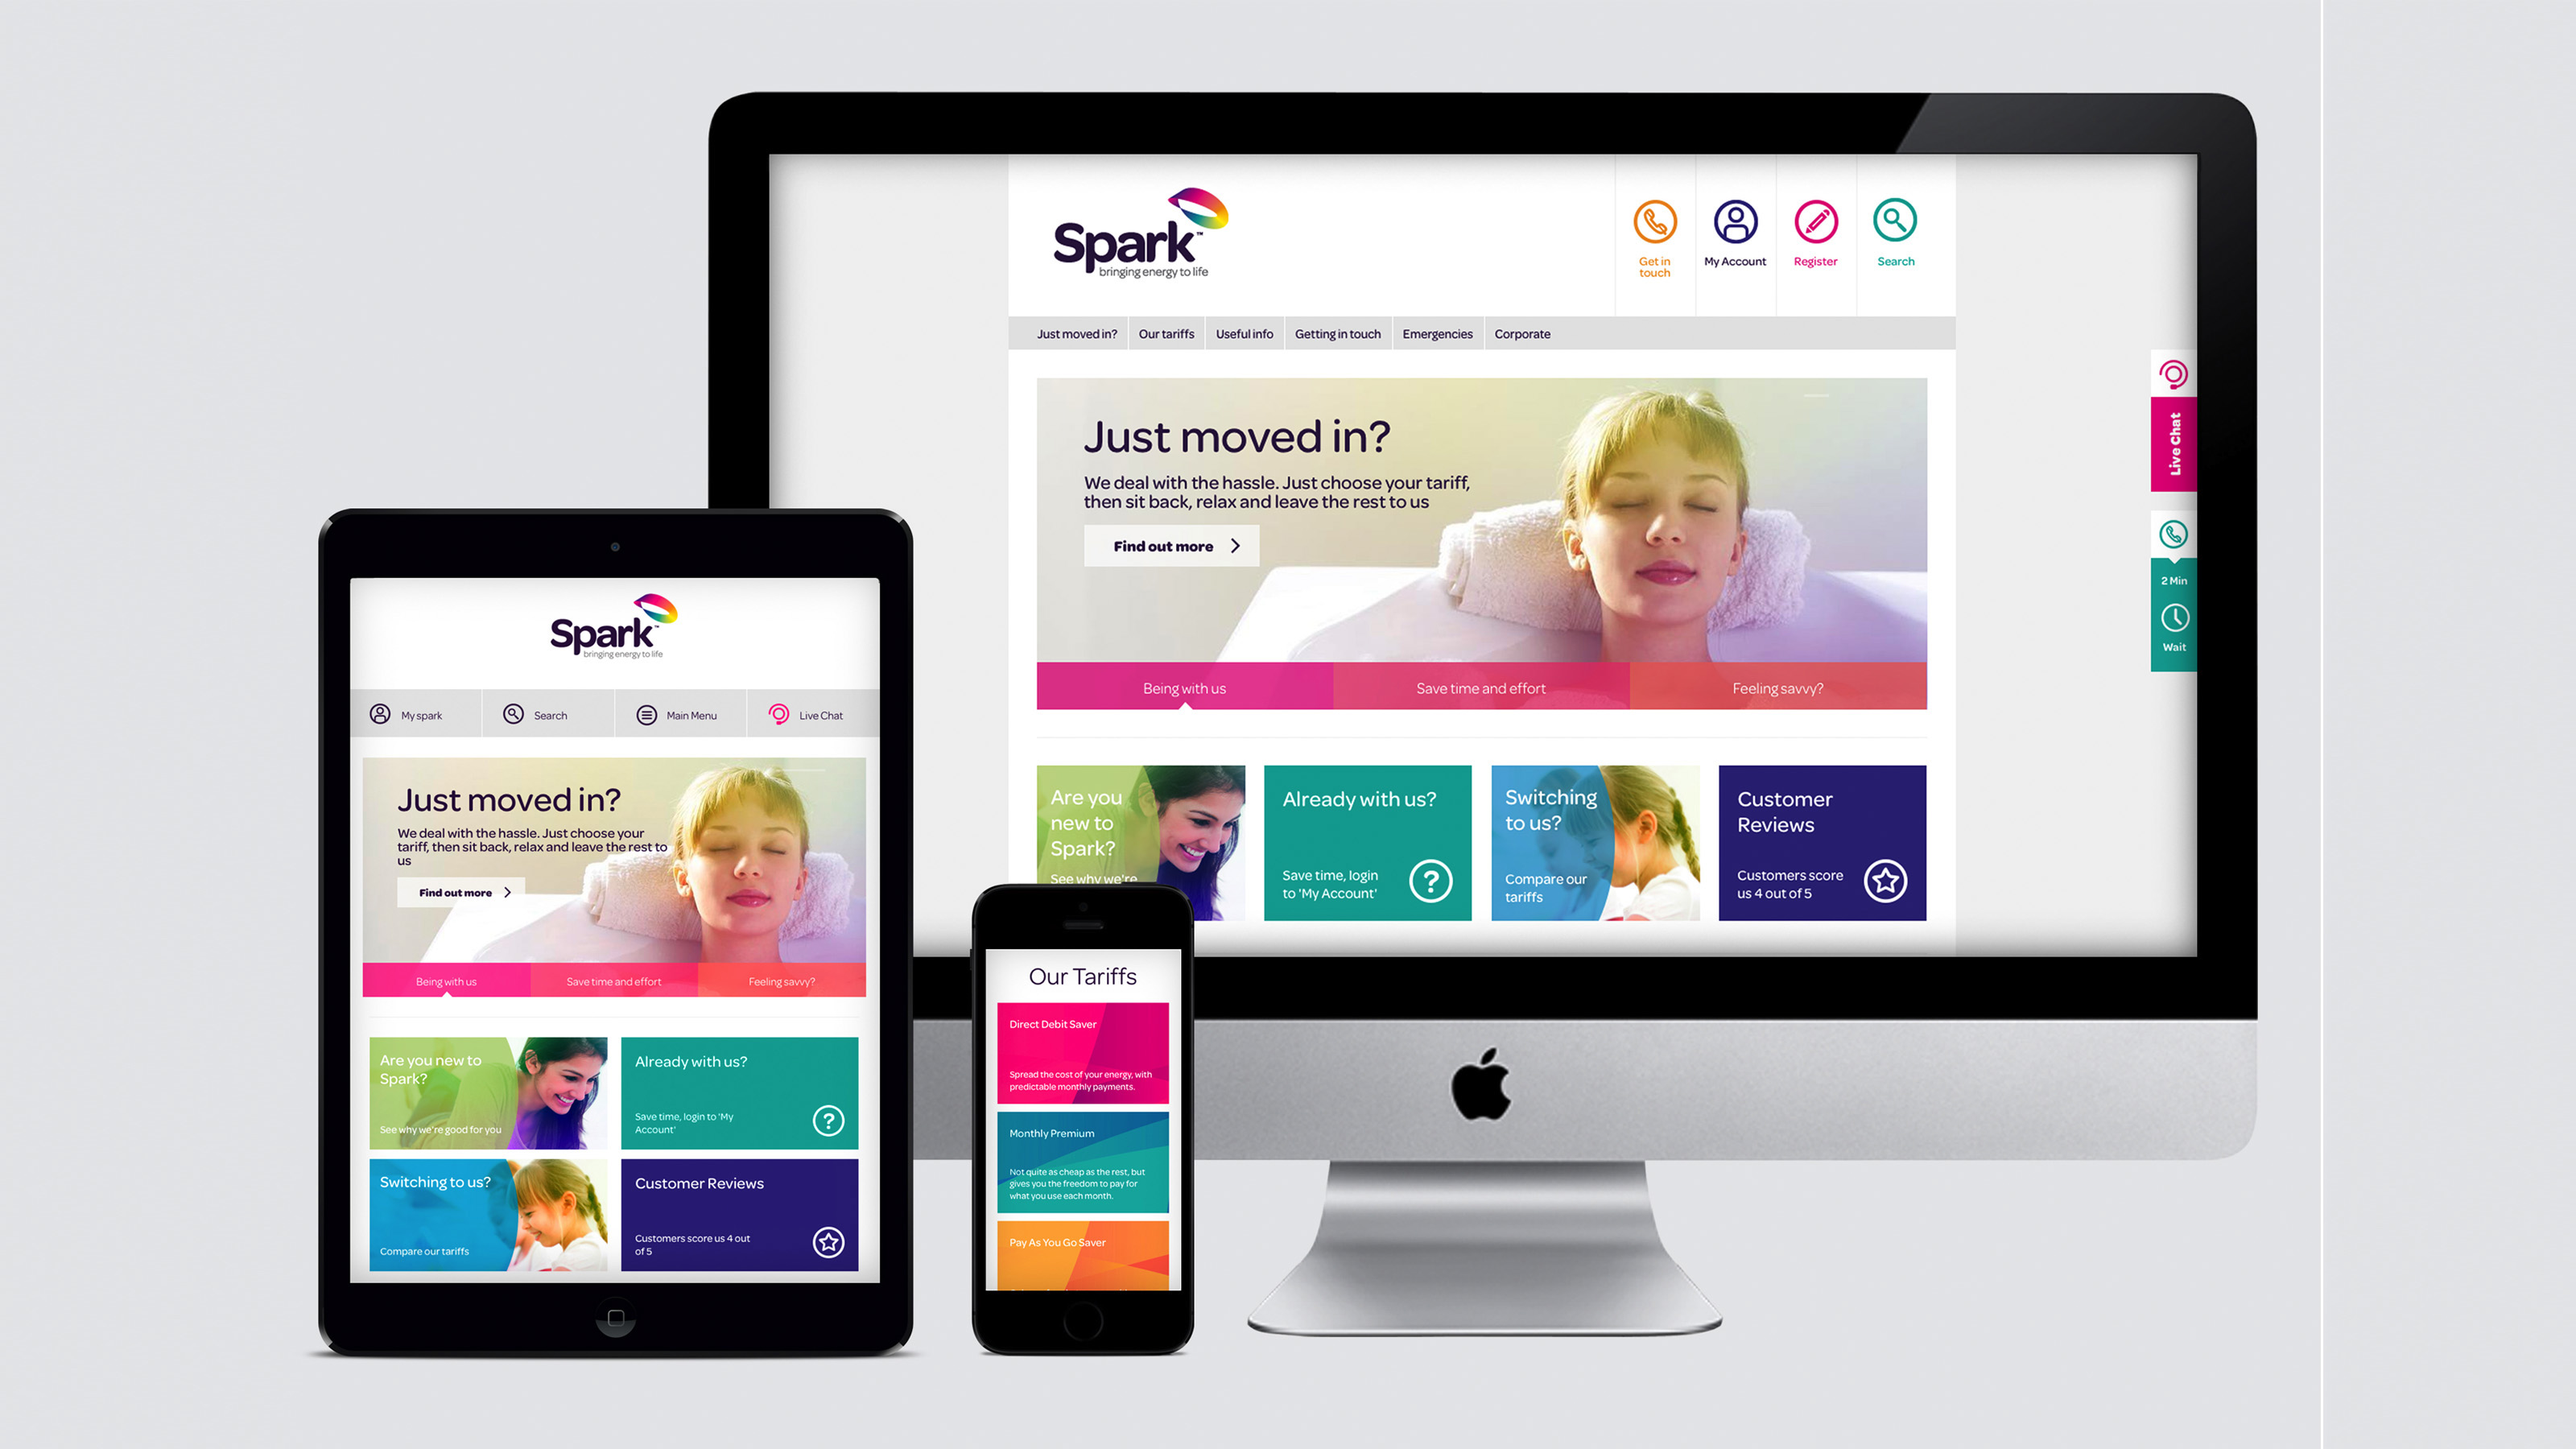 Spark website design, by 999